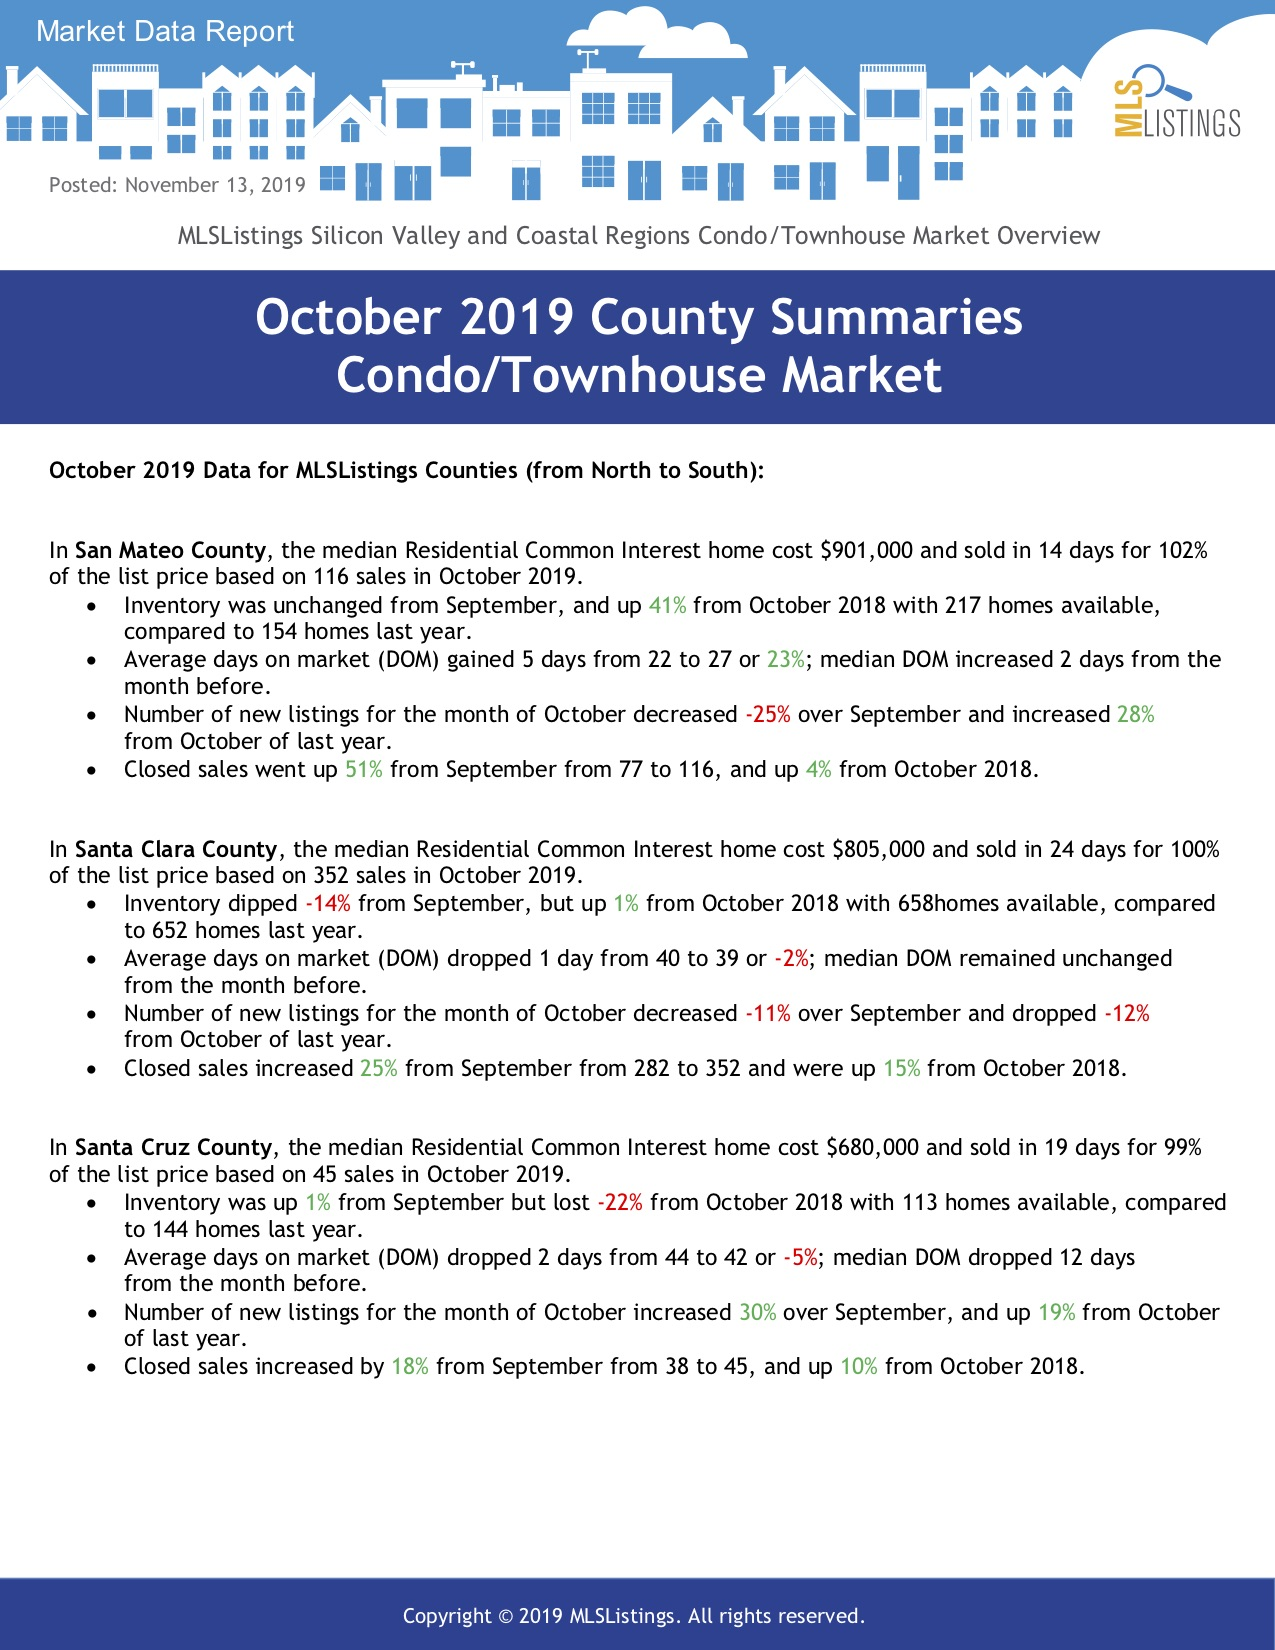 Market Data Report Condo Townhouse Oct 2019